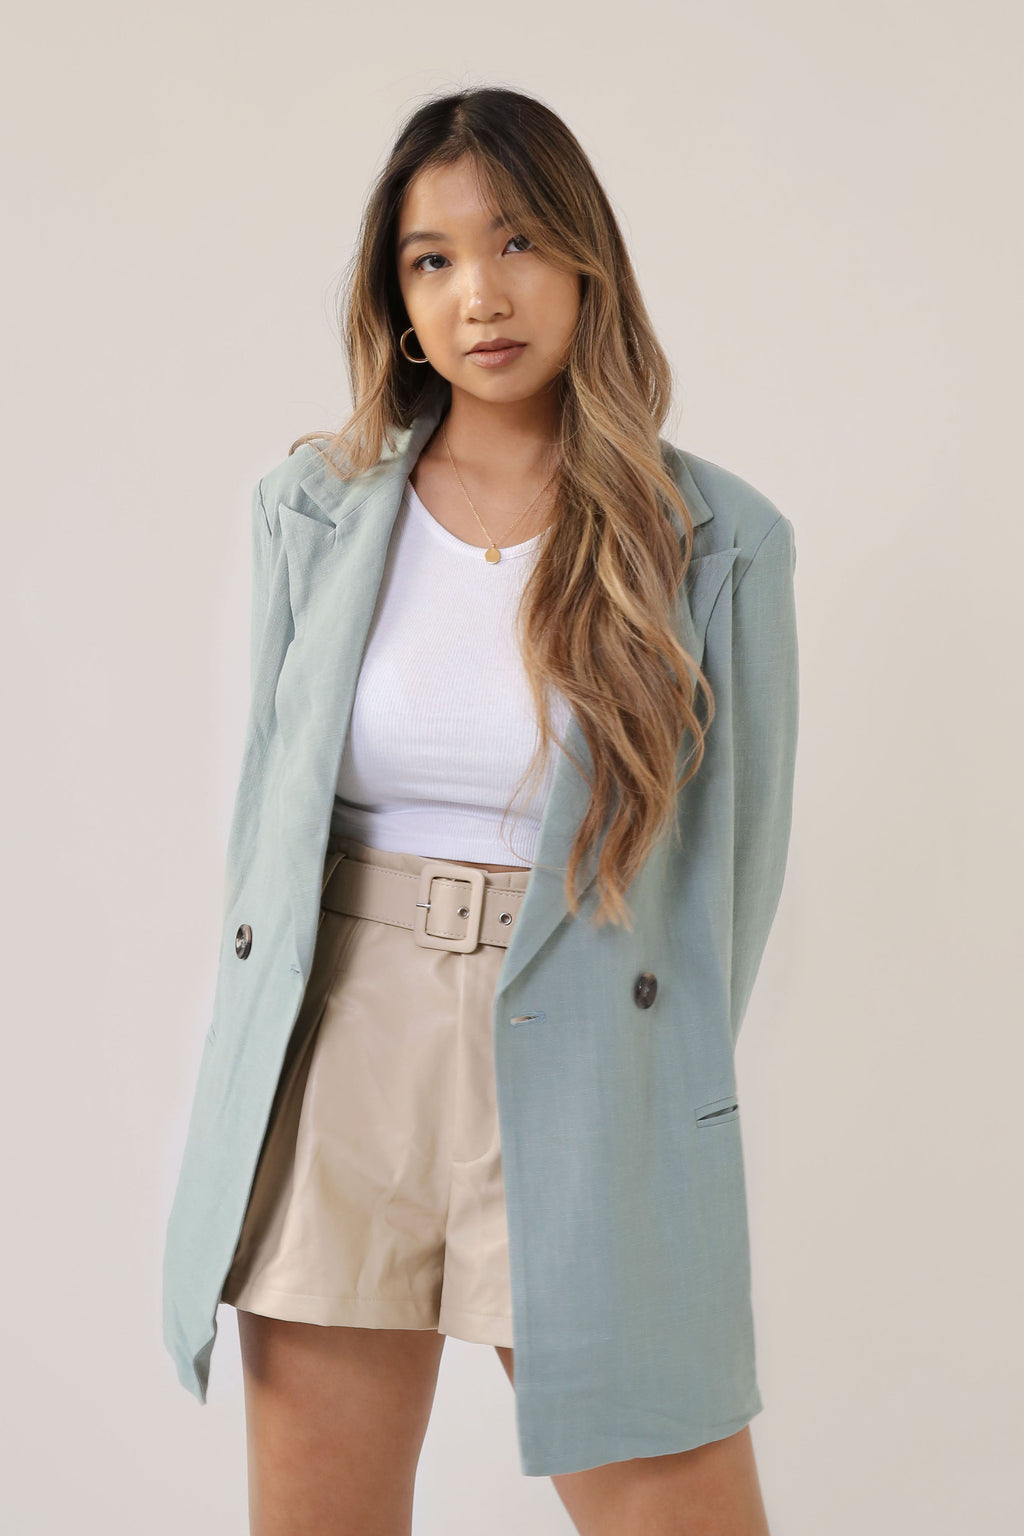 wild rina womens moden boho cute trendy boutique sage green mint longline oversized blazer boyfriend